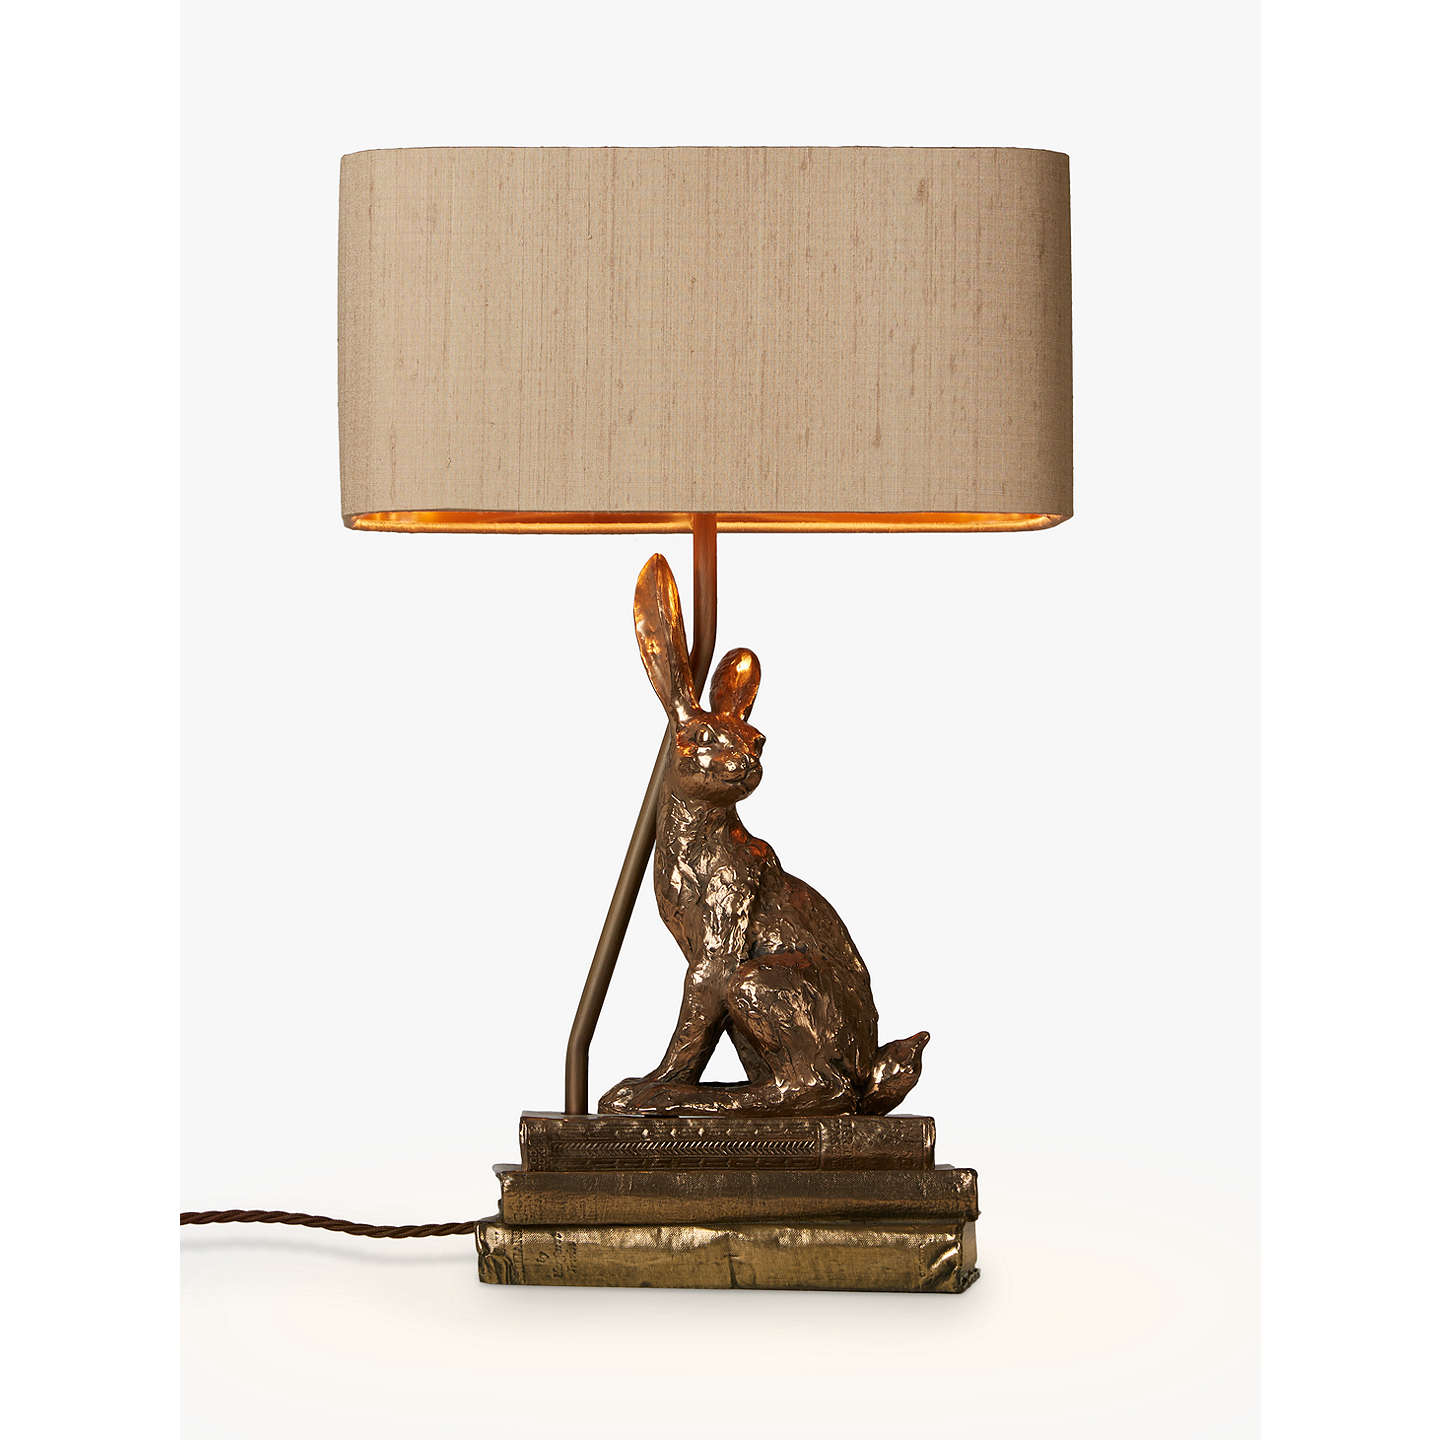 David hunt hare table lamp bronze at john lewis buydavid hunt hare table lamp bronze online at johnlewis mozeypictures Image collections